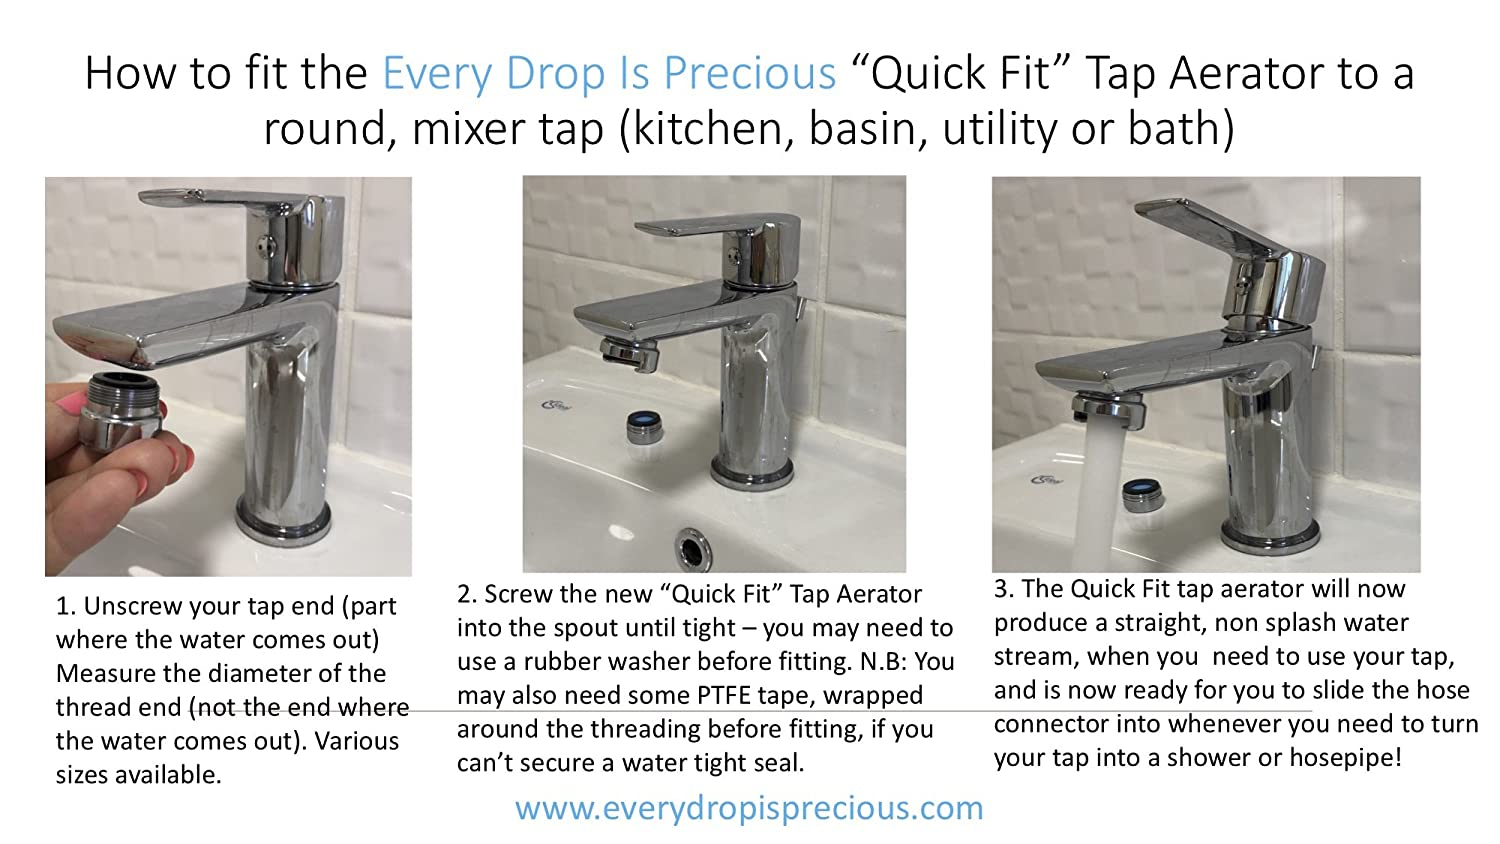 Turn your mixer tap into an instant shower Attach a Shower Hose or Hosepipe to a Tap /& Have a Permanent Tap Aerator and use your tap like normal - no more nasty once fitted Simply push your hose into the secure tap aerators casing Tap End all-in-one